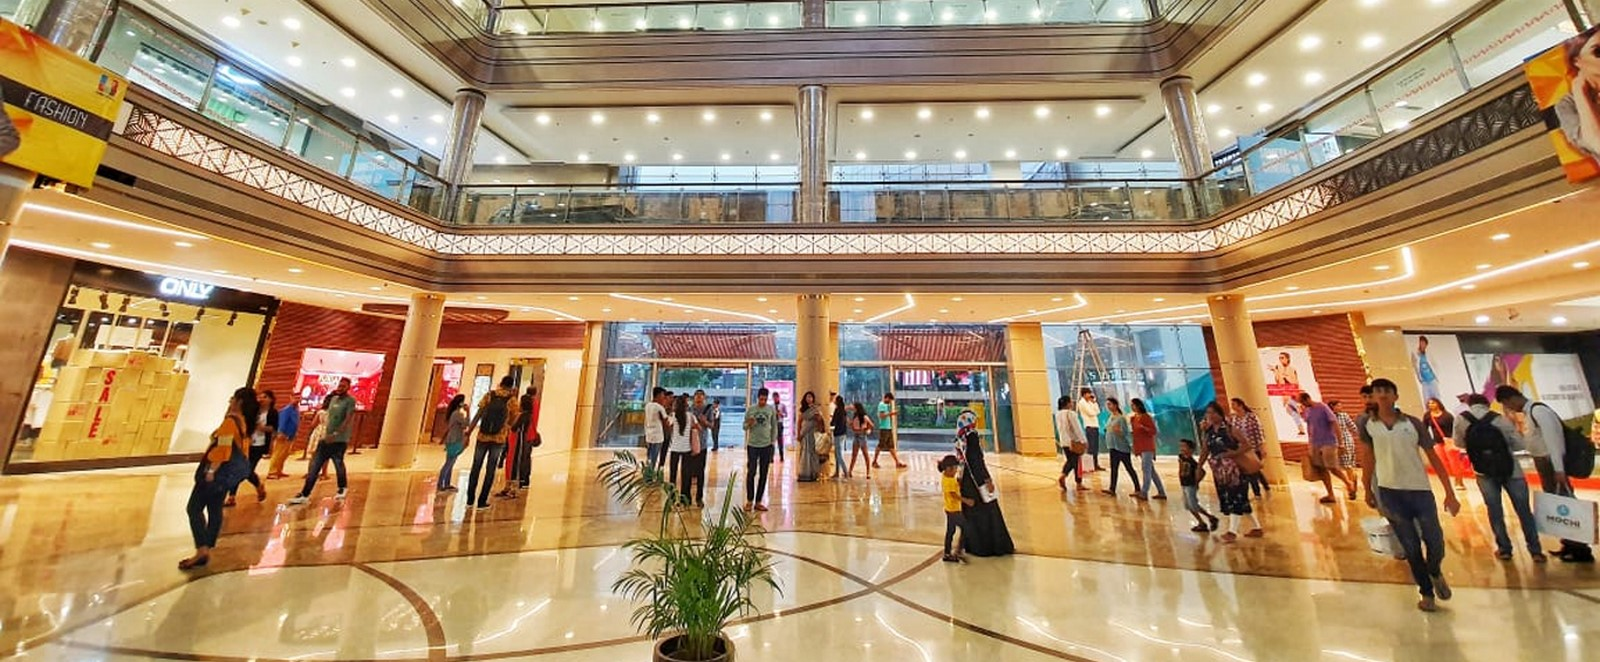 R City Mall by Hafeez Contractor: Everything under One Roof - Sheet8